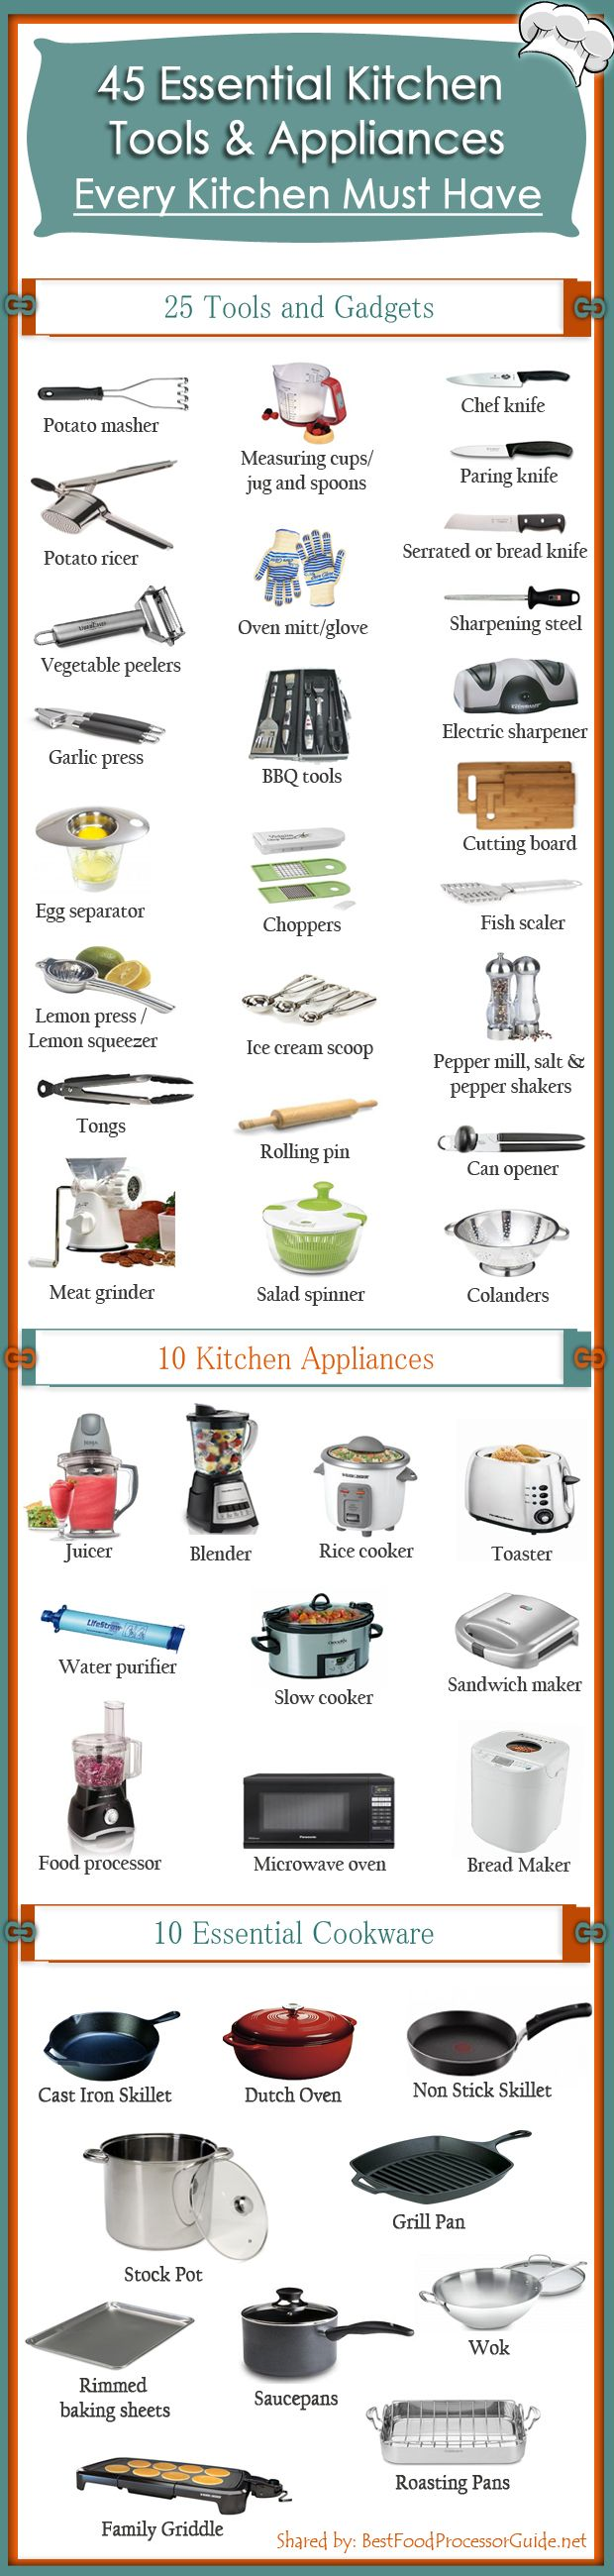 45 Essential Kitchen Tools - Every Kitchen Must Have